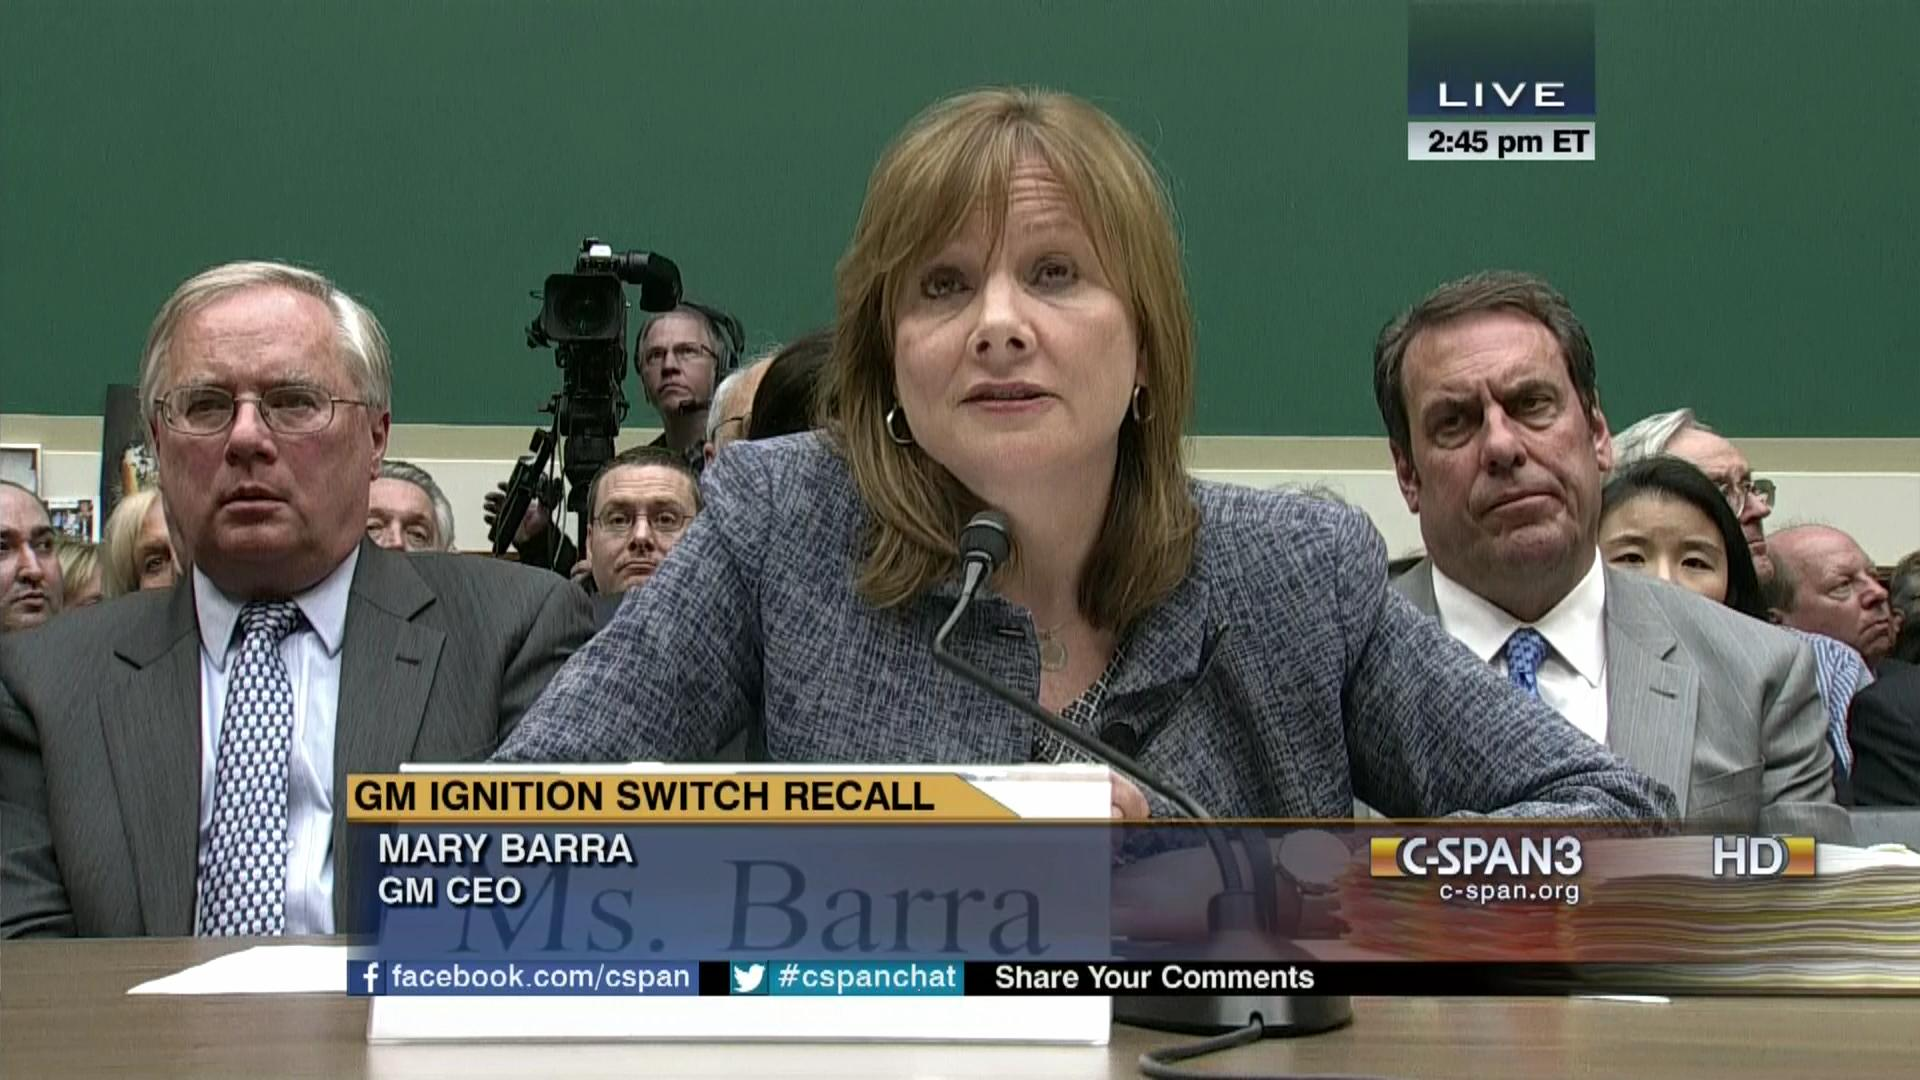 GM Ignition Switch Recall, Apr 1 2014 | Video | C SPAN.org